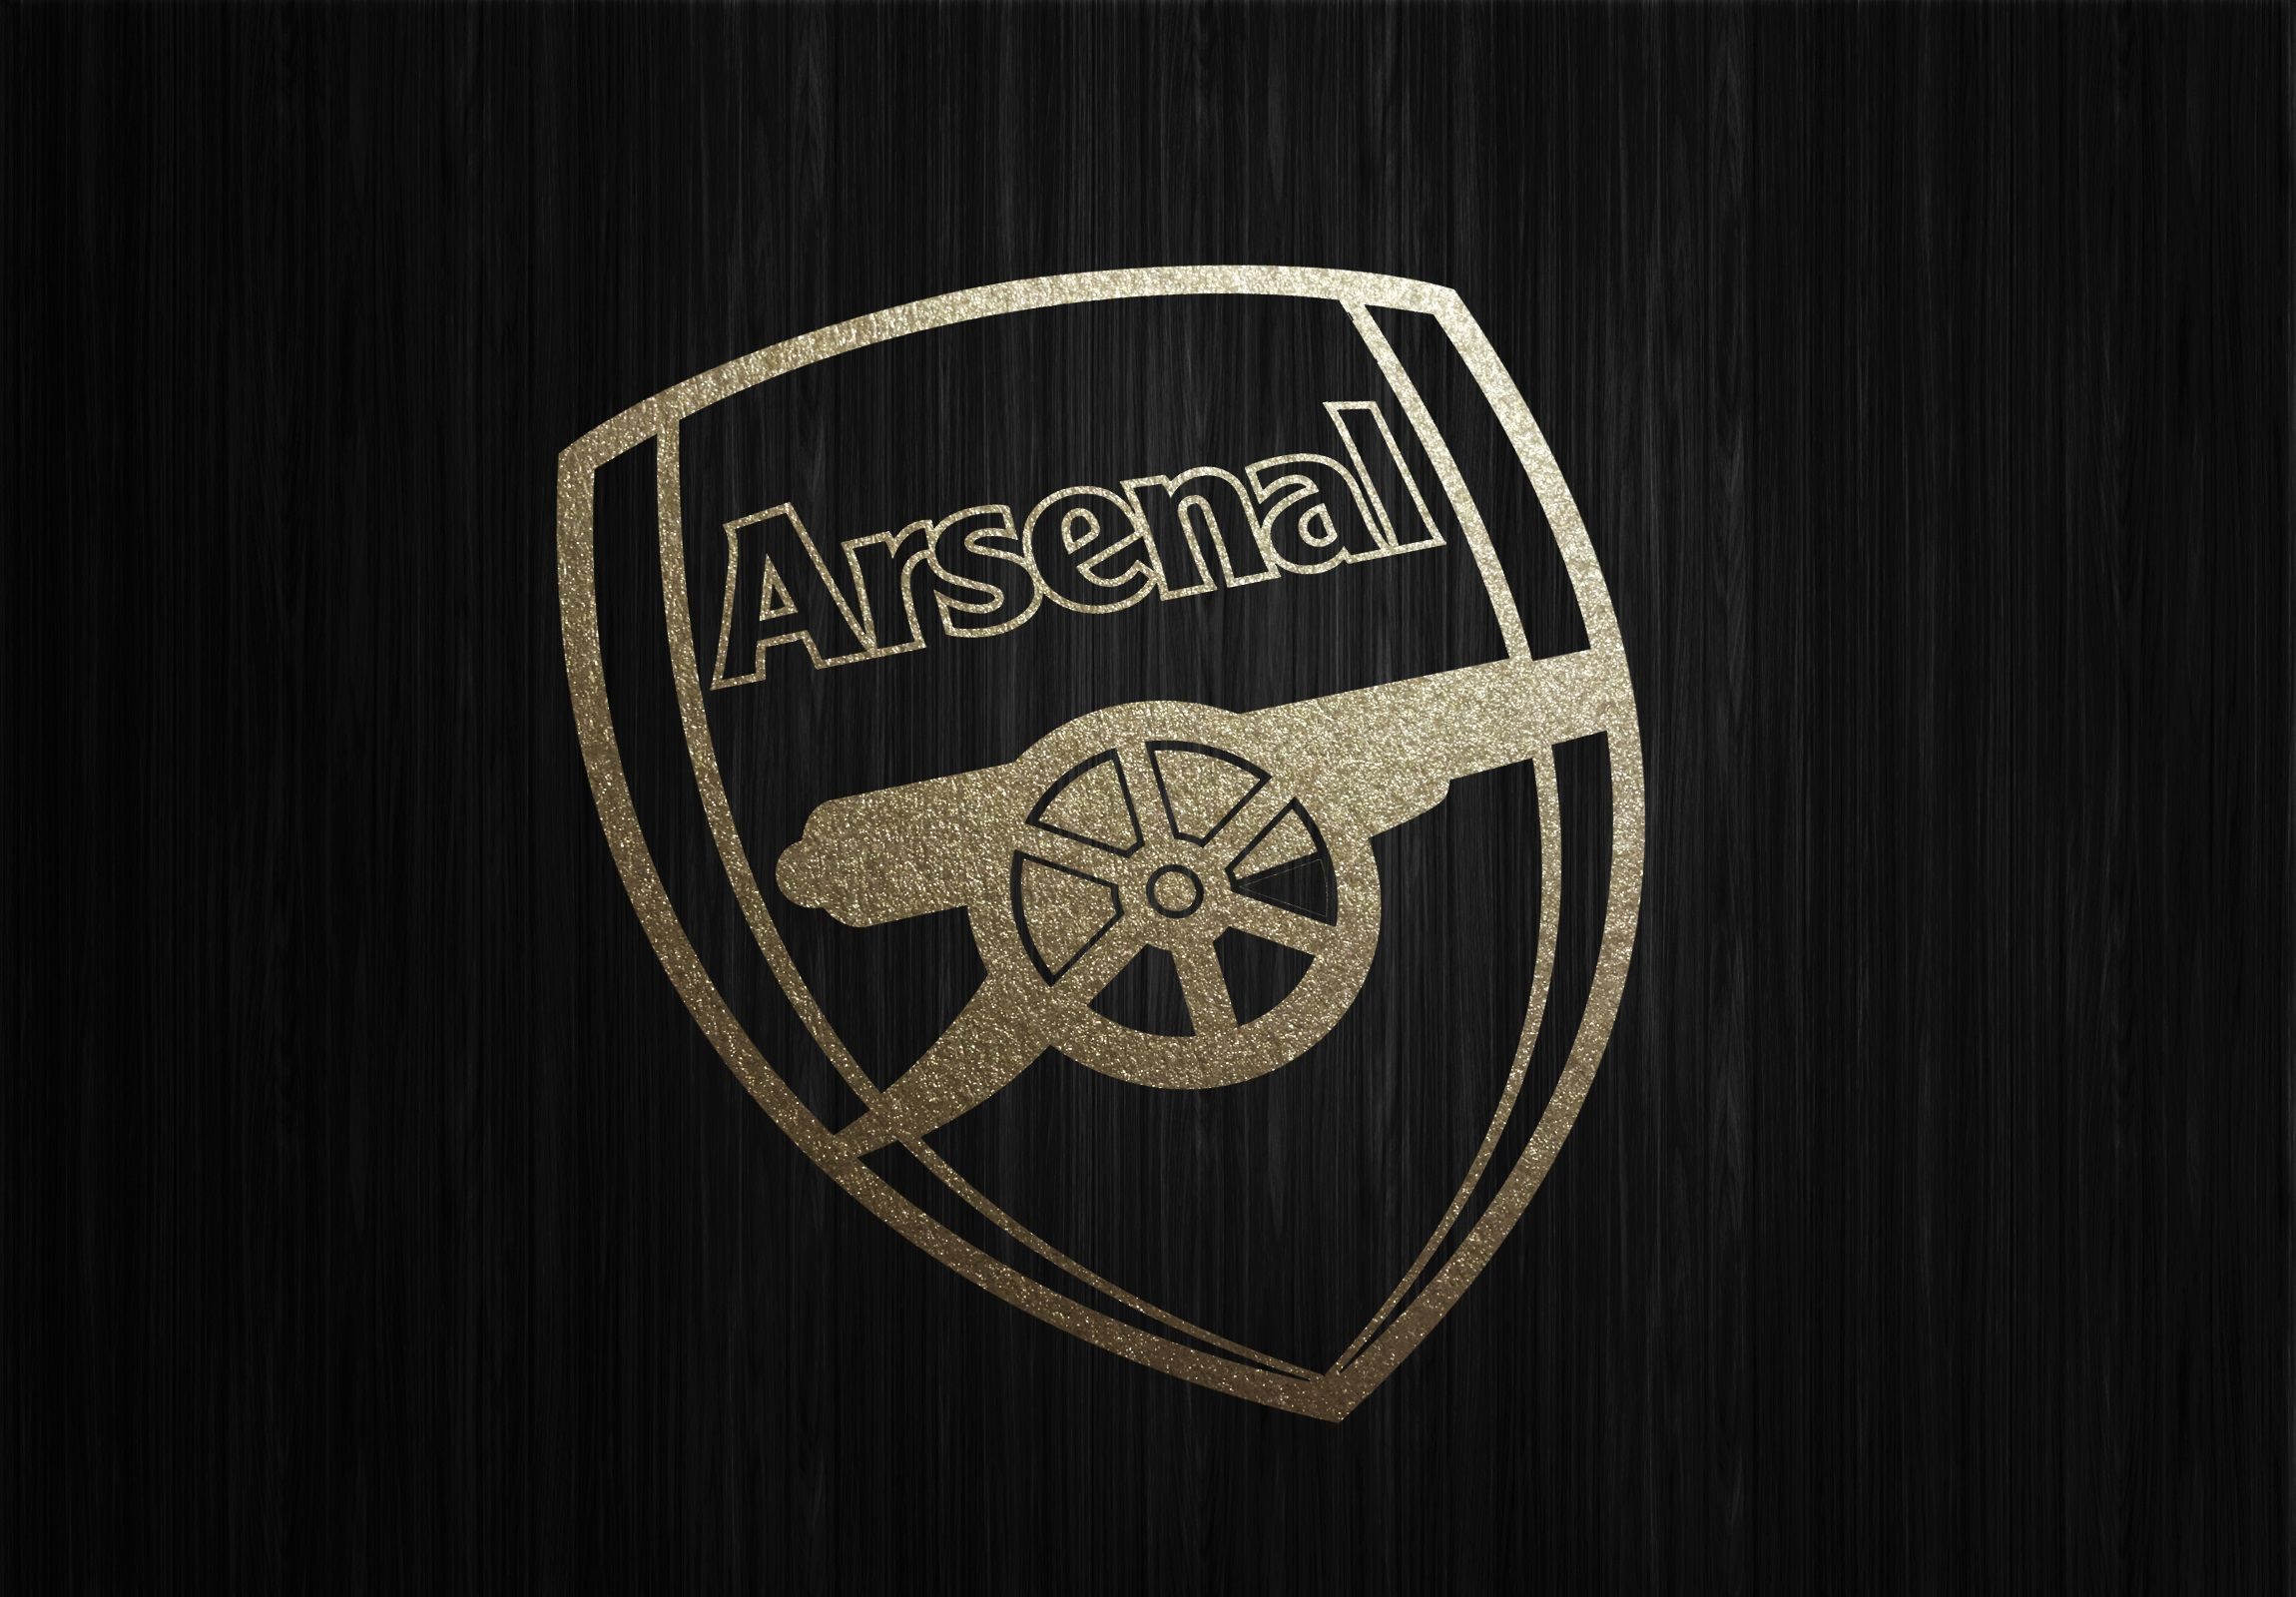 arsenal football club wallpaper football wallpaper hd 1920a—1080 arsenal fc wallpapers 48 wallpapers adorable wallpapers desktop pinterest